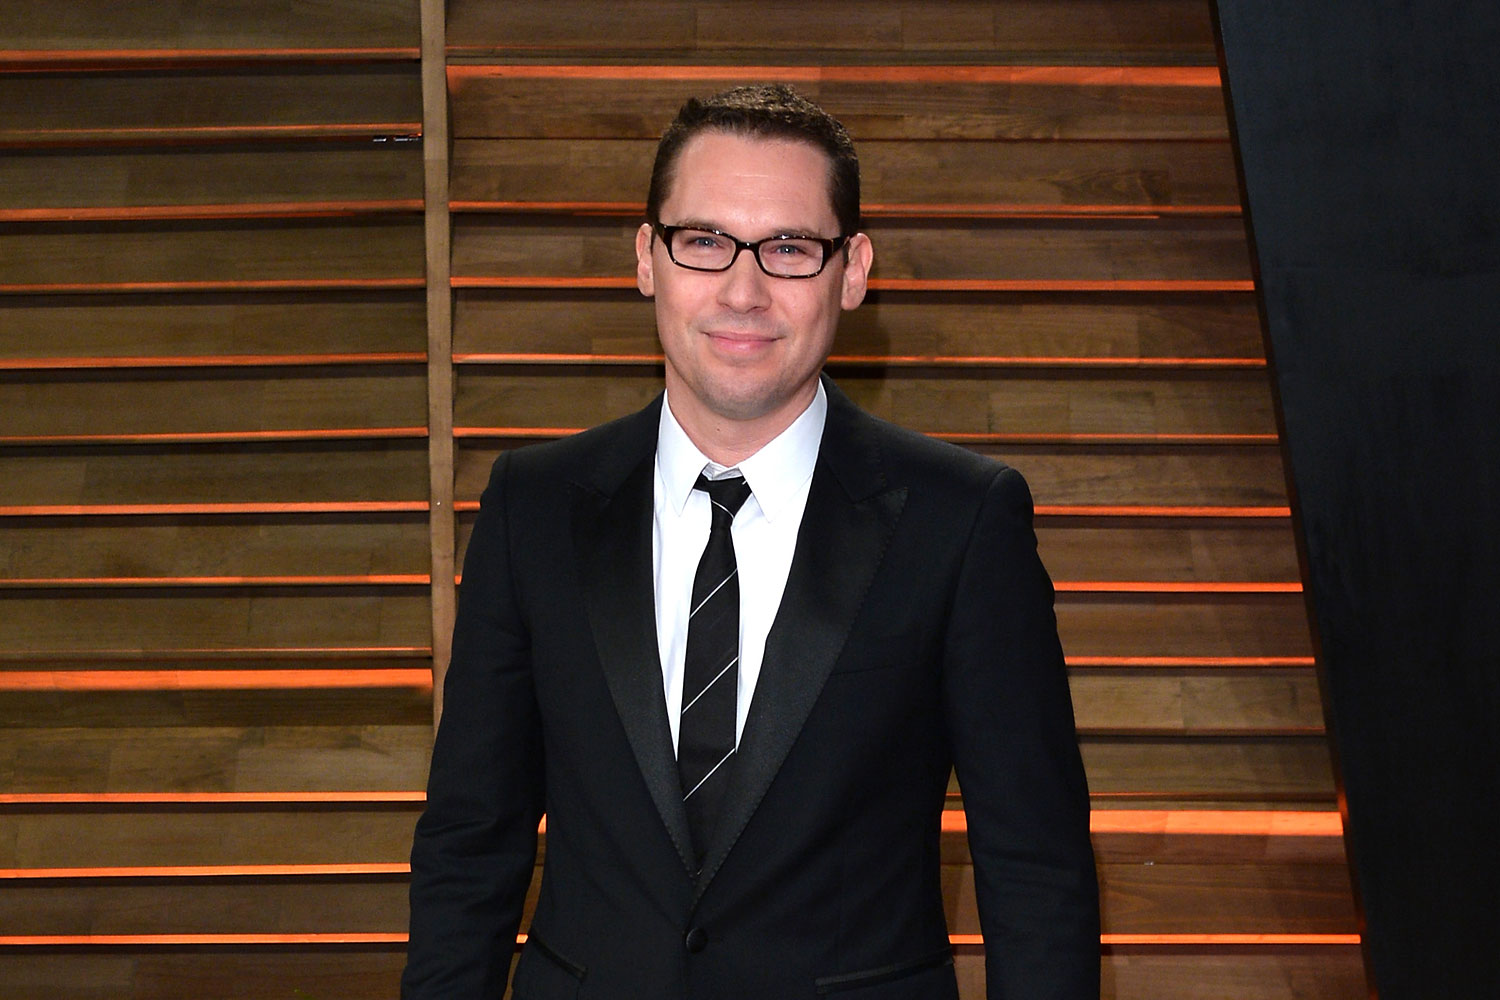 Director Bryan Singer attends the 2014 Vanity Fair Oscar Party hosted by Graydon Carter on March 2, 2014 in West Hollywood, Calif.